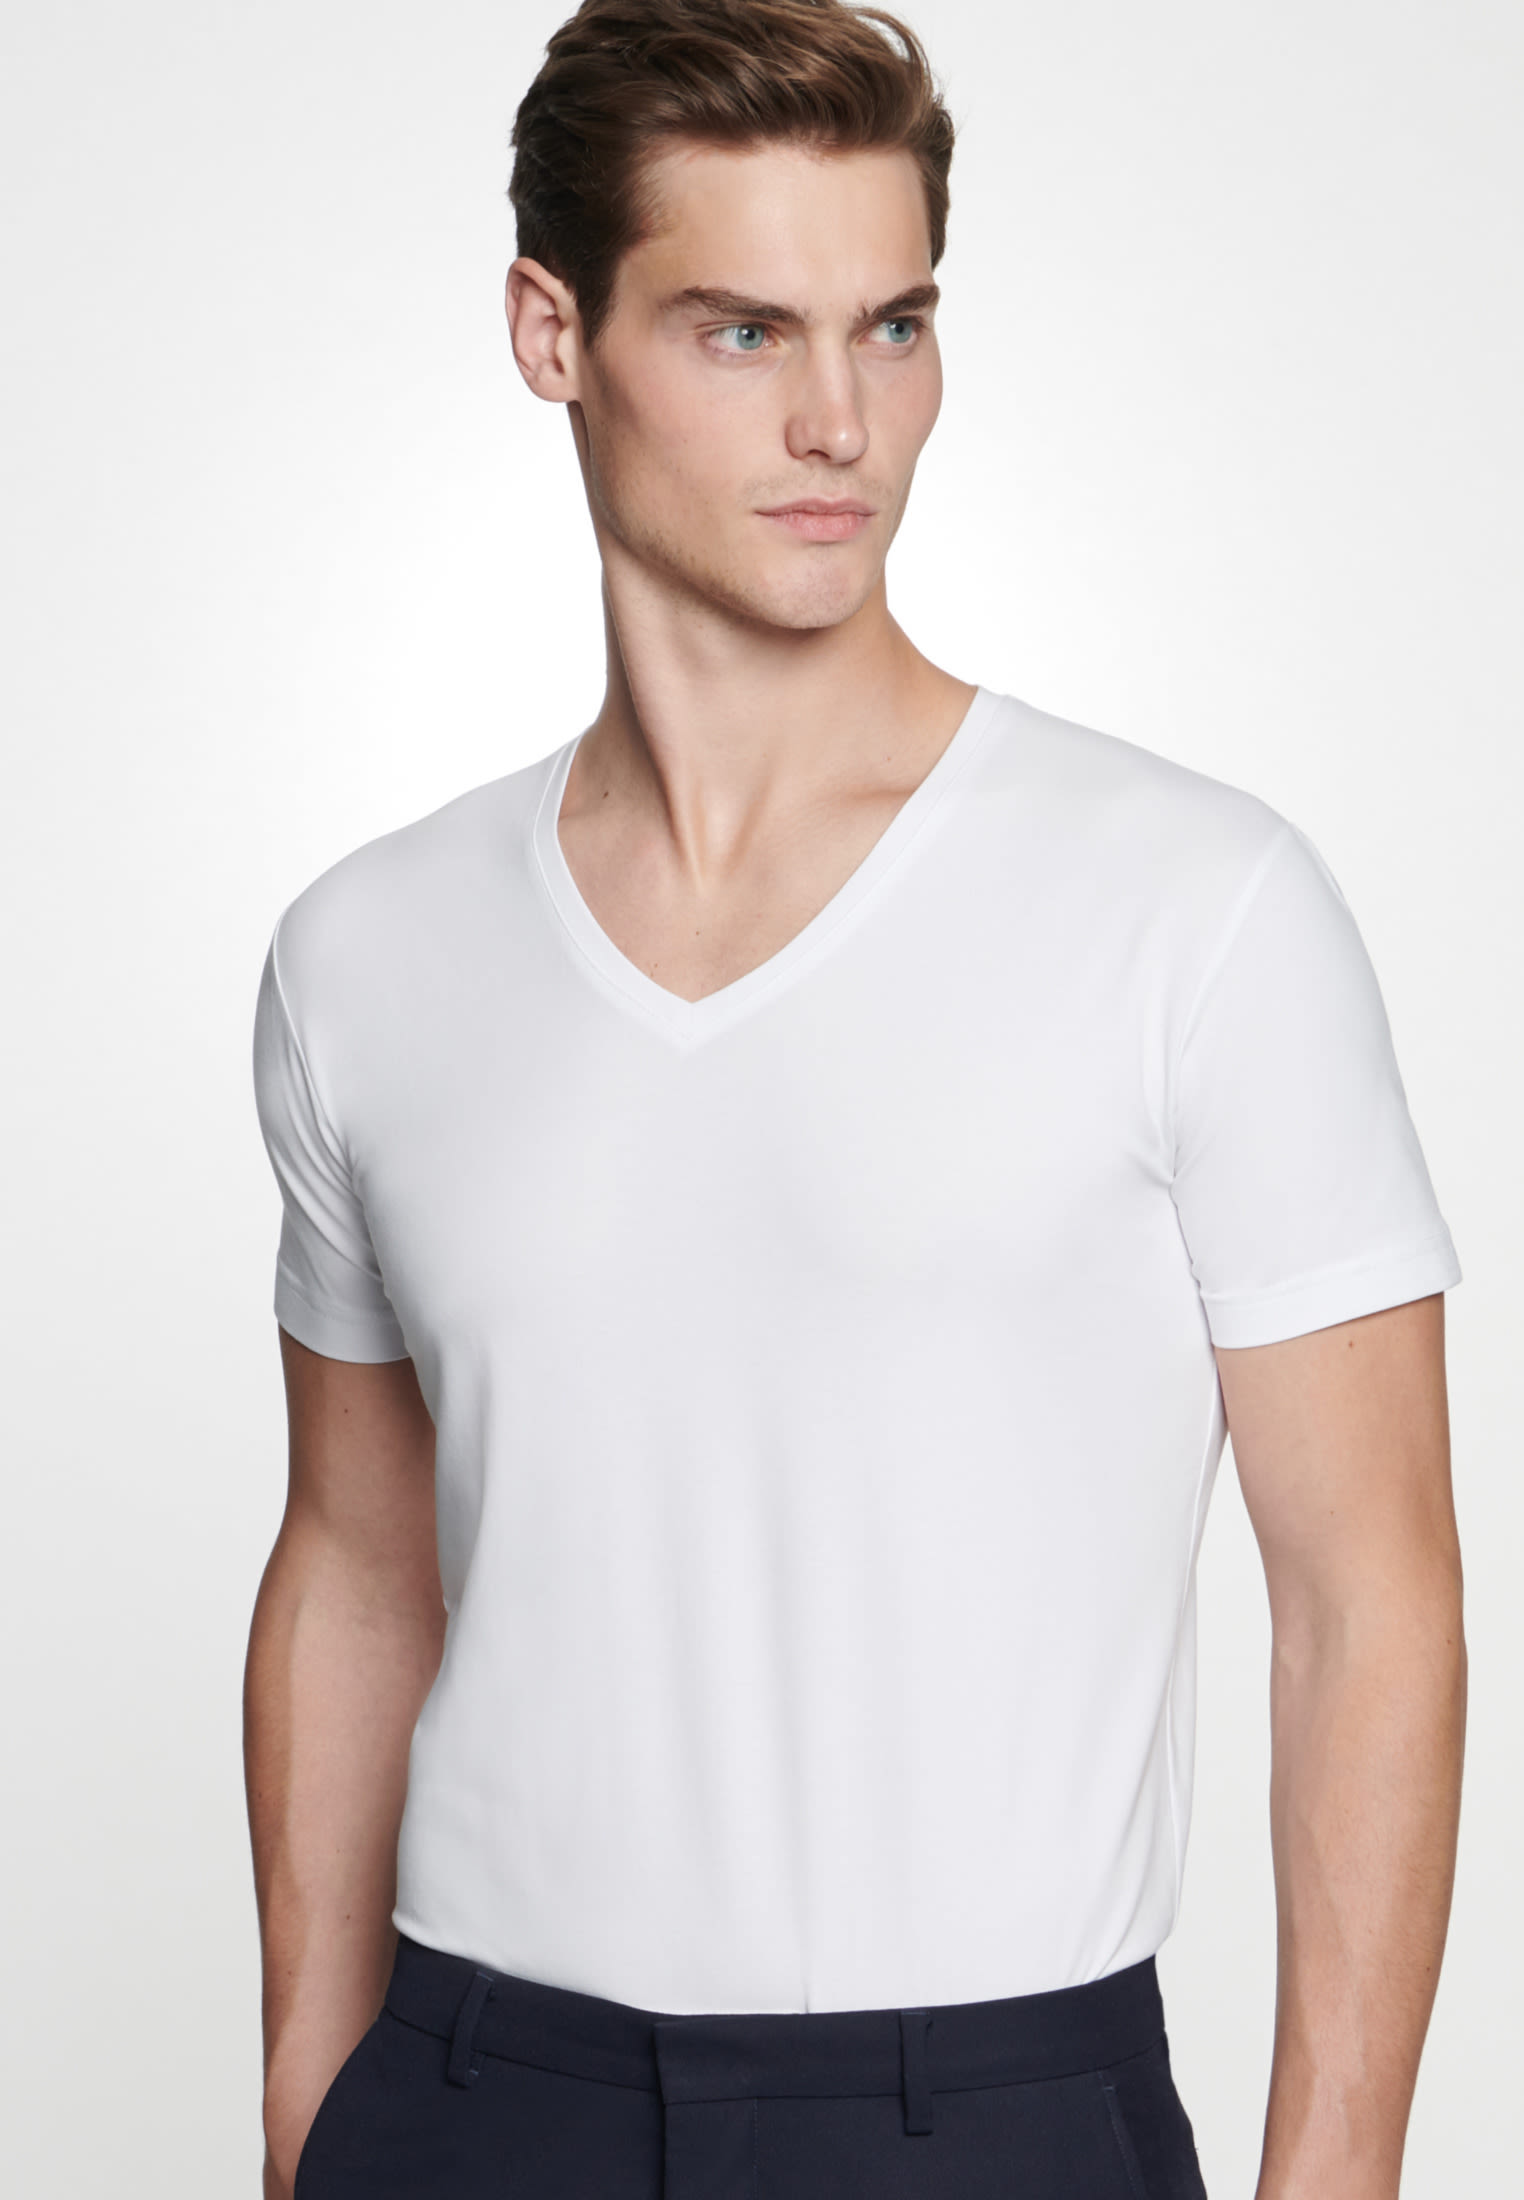 V-Neck T-Shirt made of cotton blend in White |  Seidensticker Onlineshop